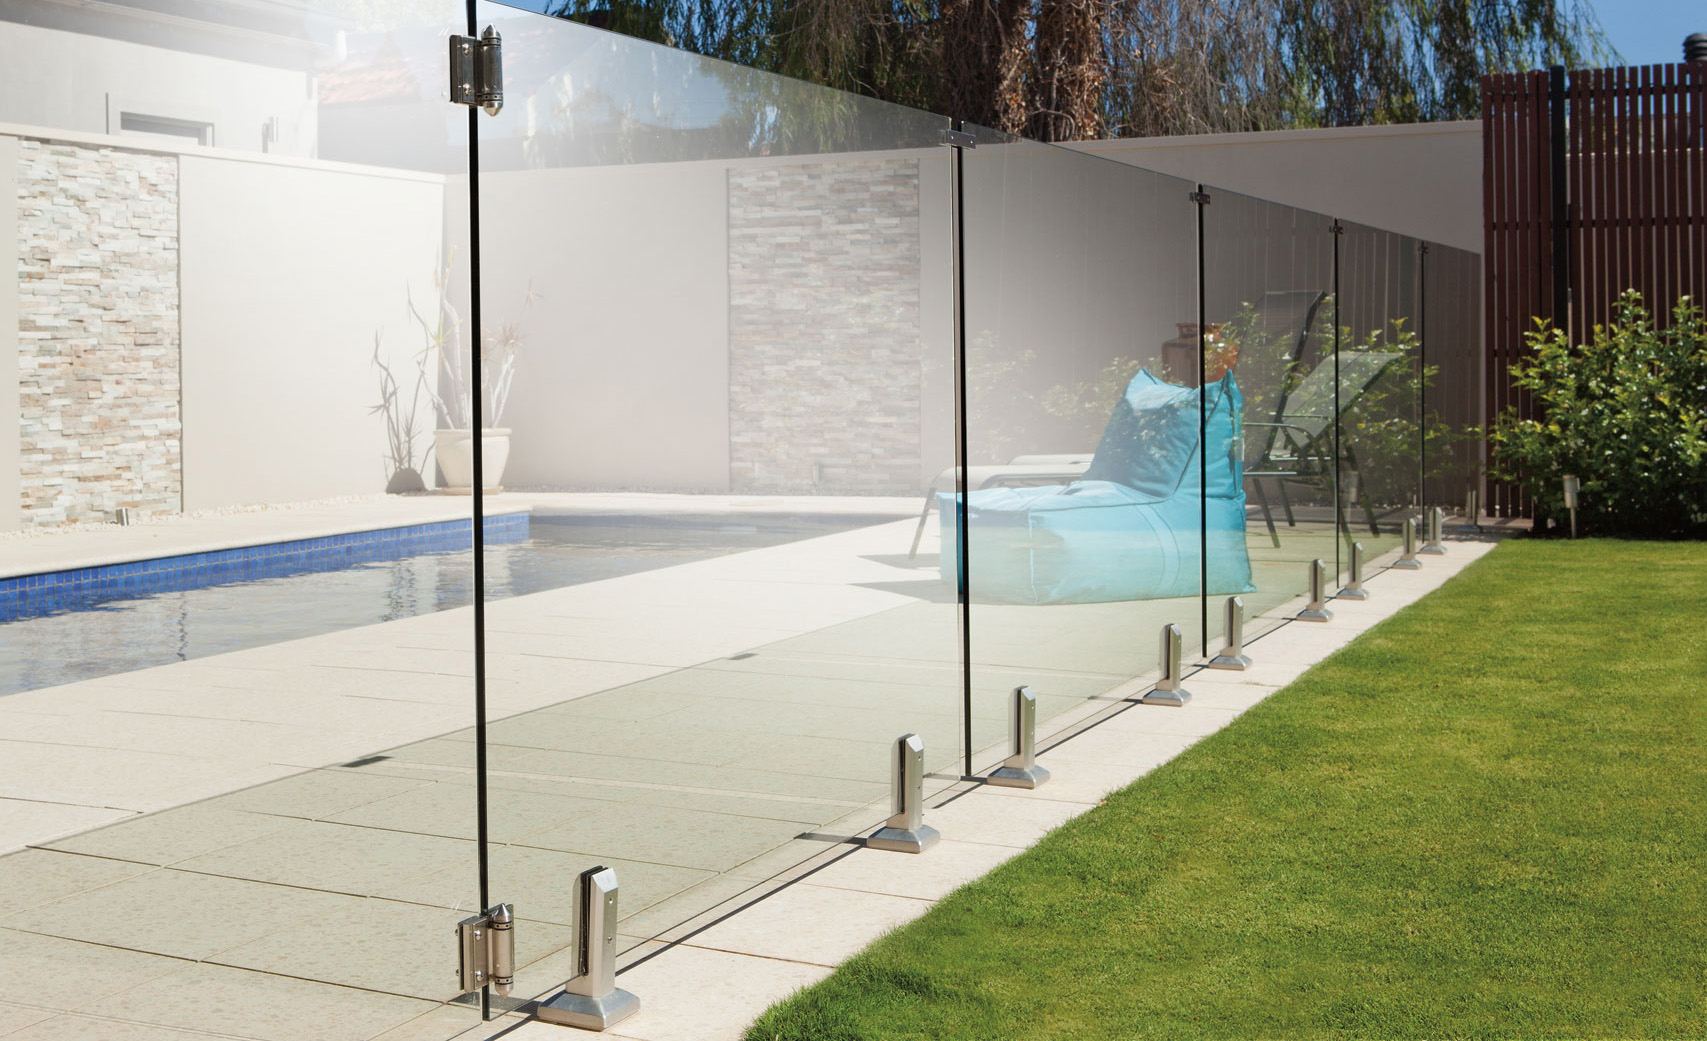 La cl ture en verre for Cloture pour piscine gonflable